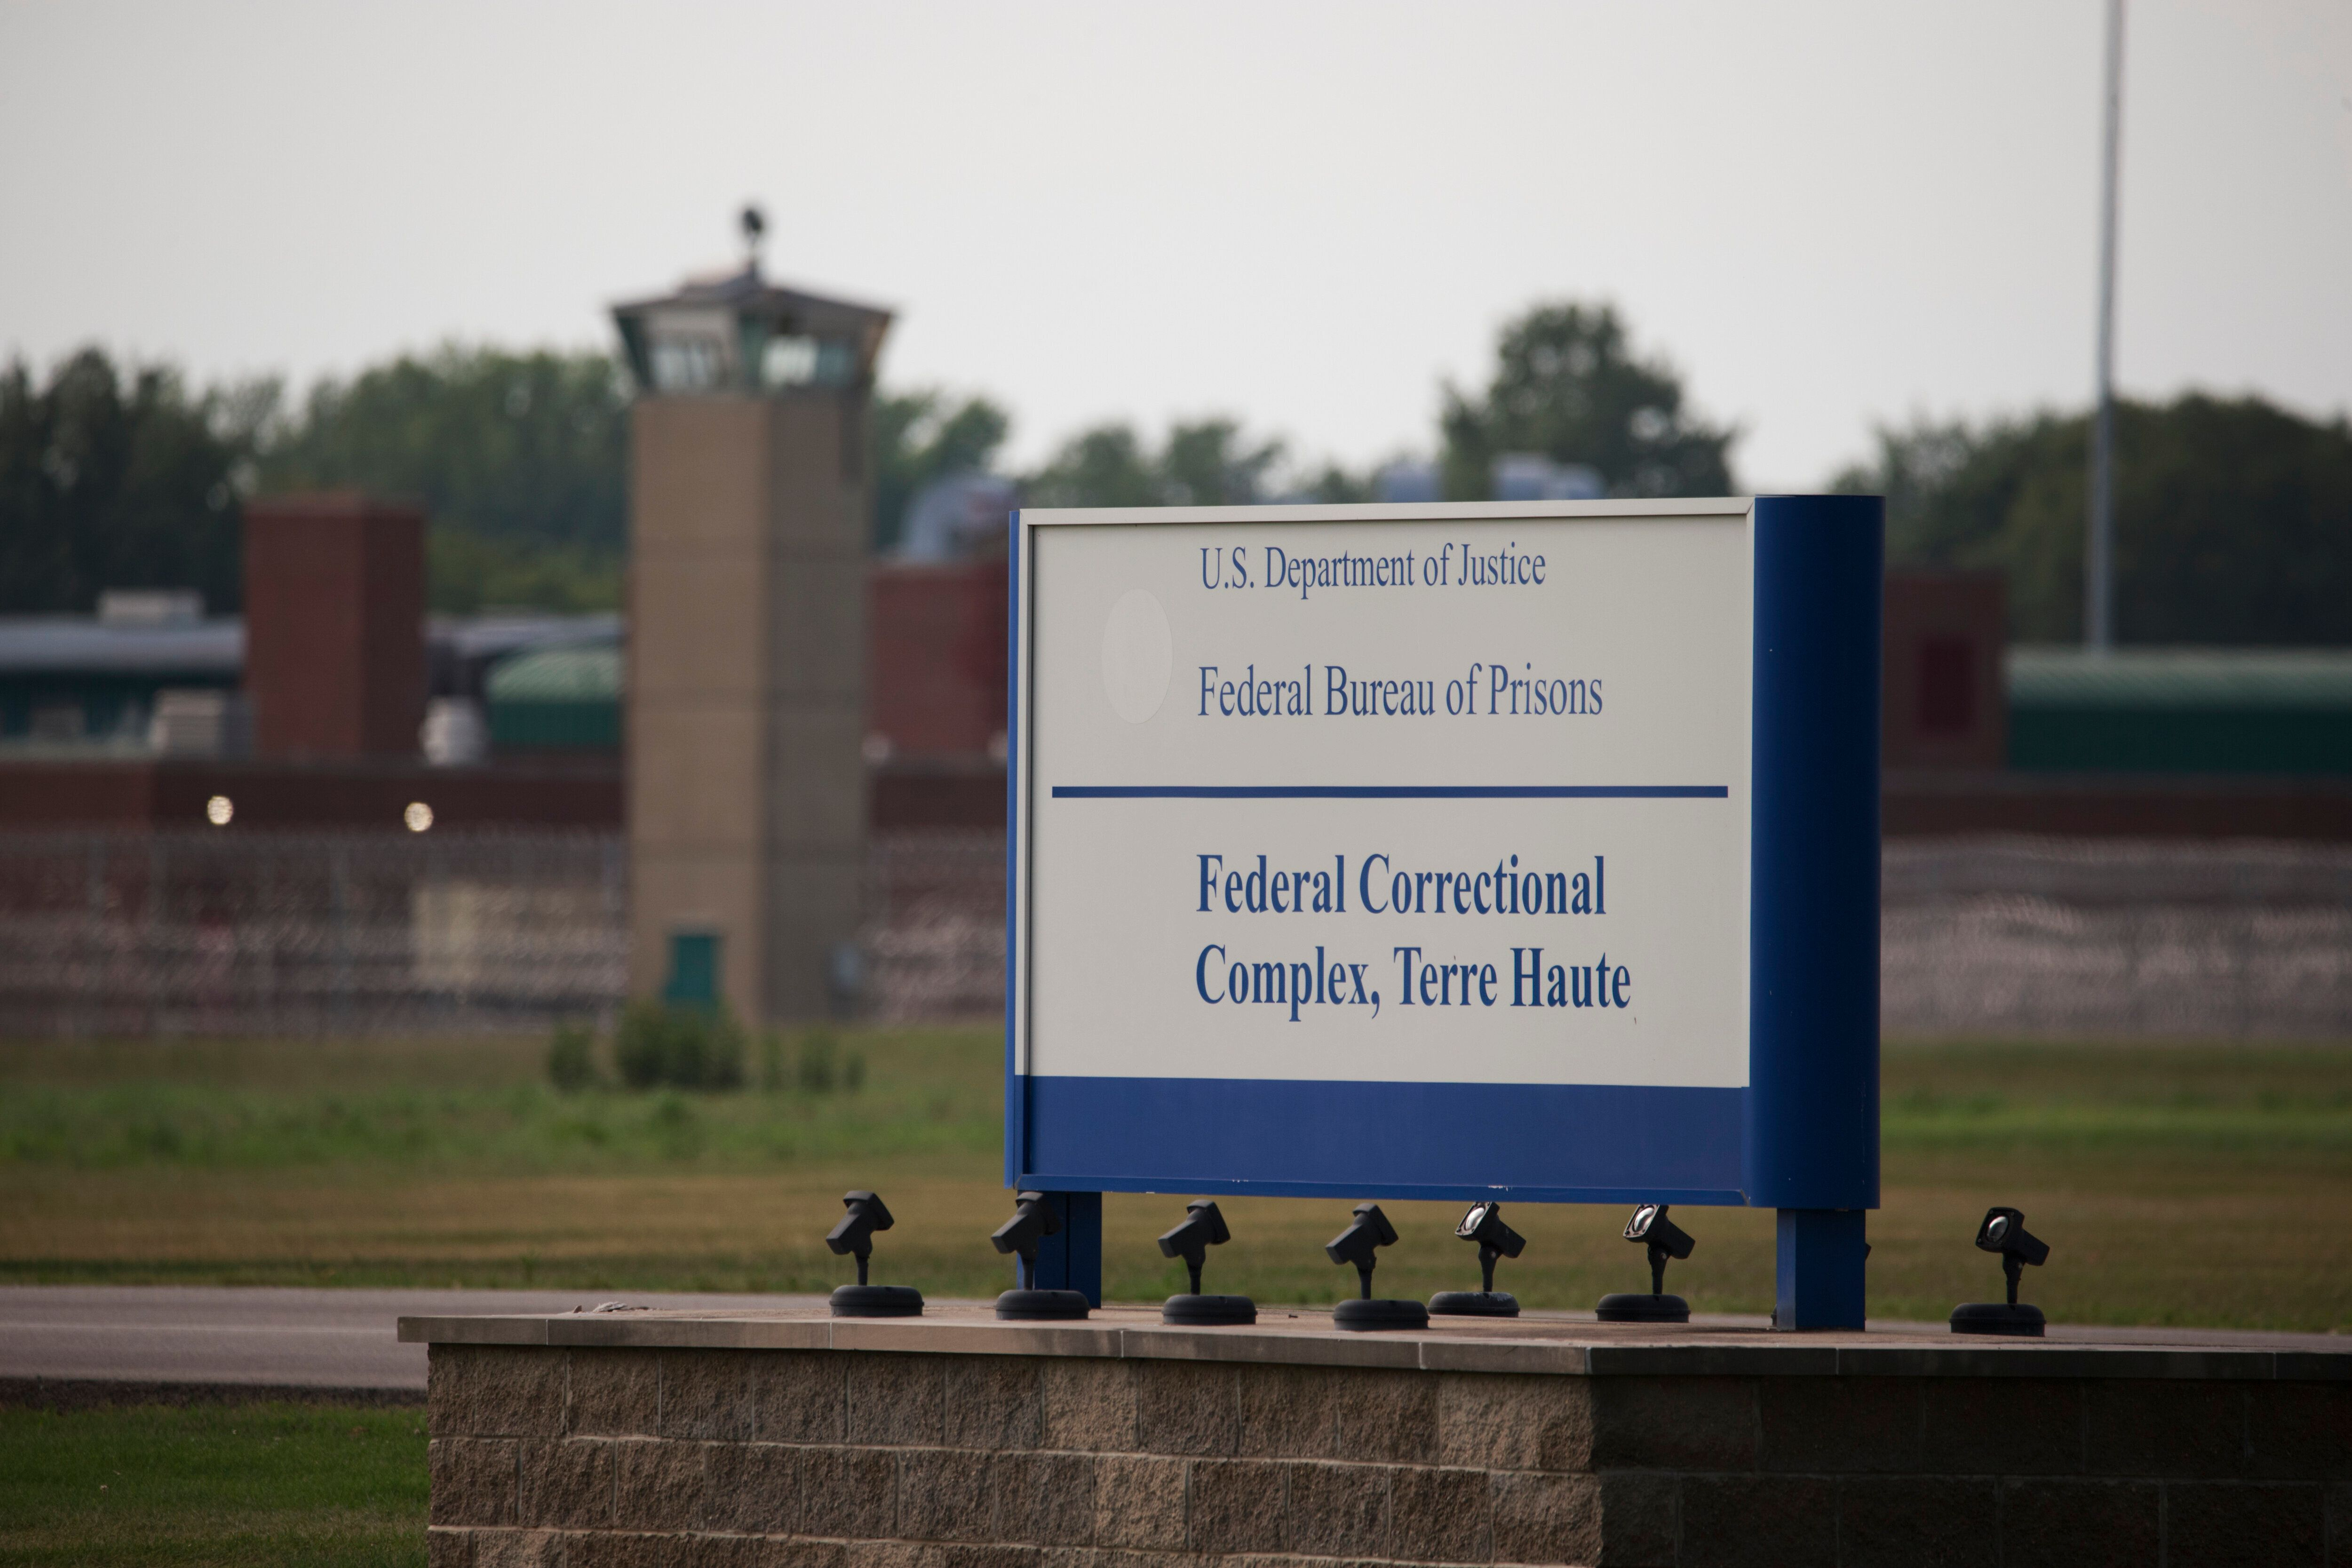 The Terre Haute Federal Correctional Complex is where federal executions are carried out.